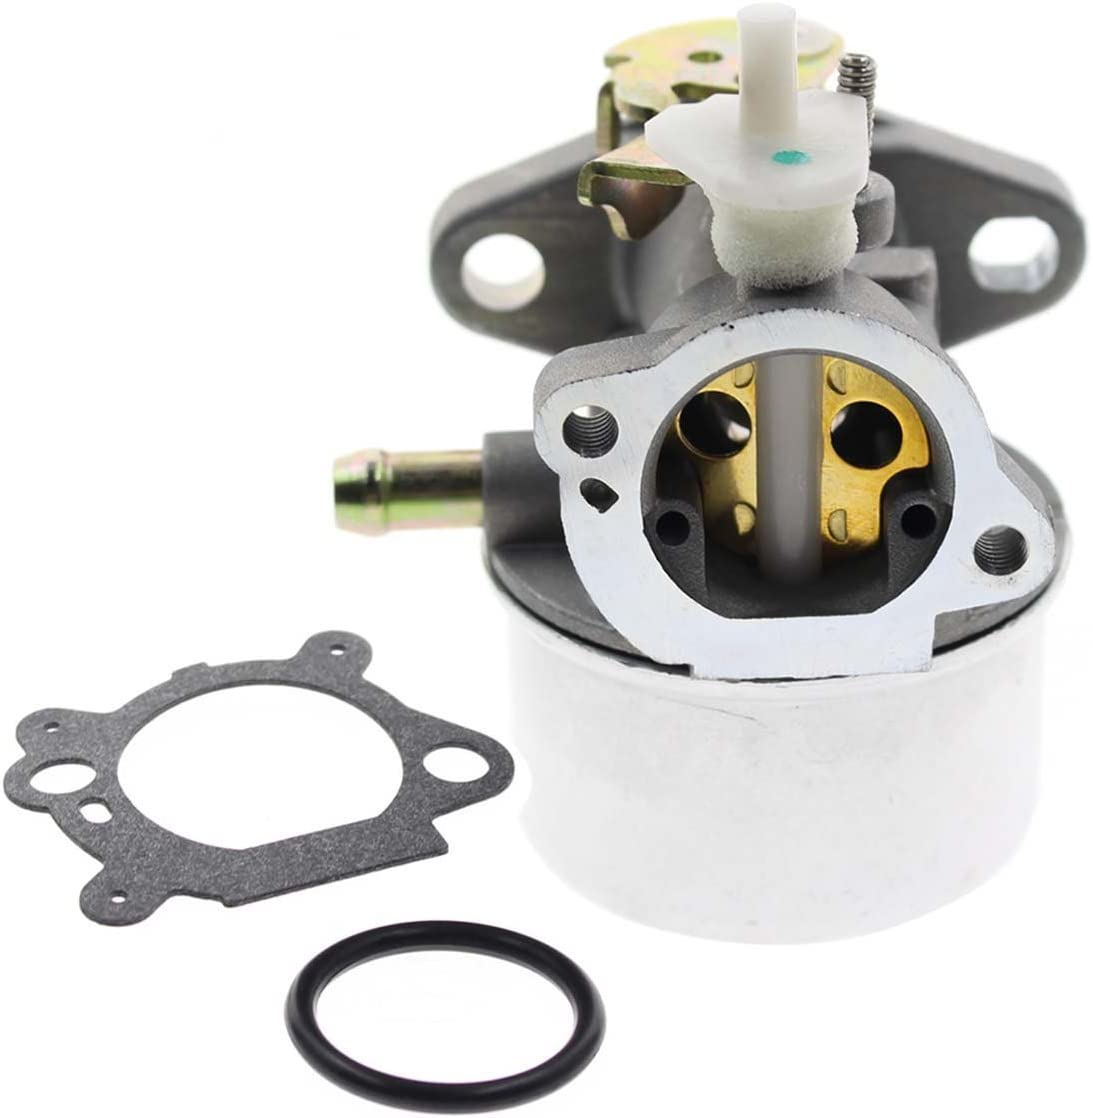 Carbhub 799869 Carburetor for Briggs and Stratton 792253 497586 499059 799869 Lawn Mower Pressure Washer Rotary 14112 Oregon 50-658 Briggs and Stratton Carburetor (497586 Carburetor)